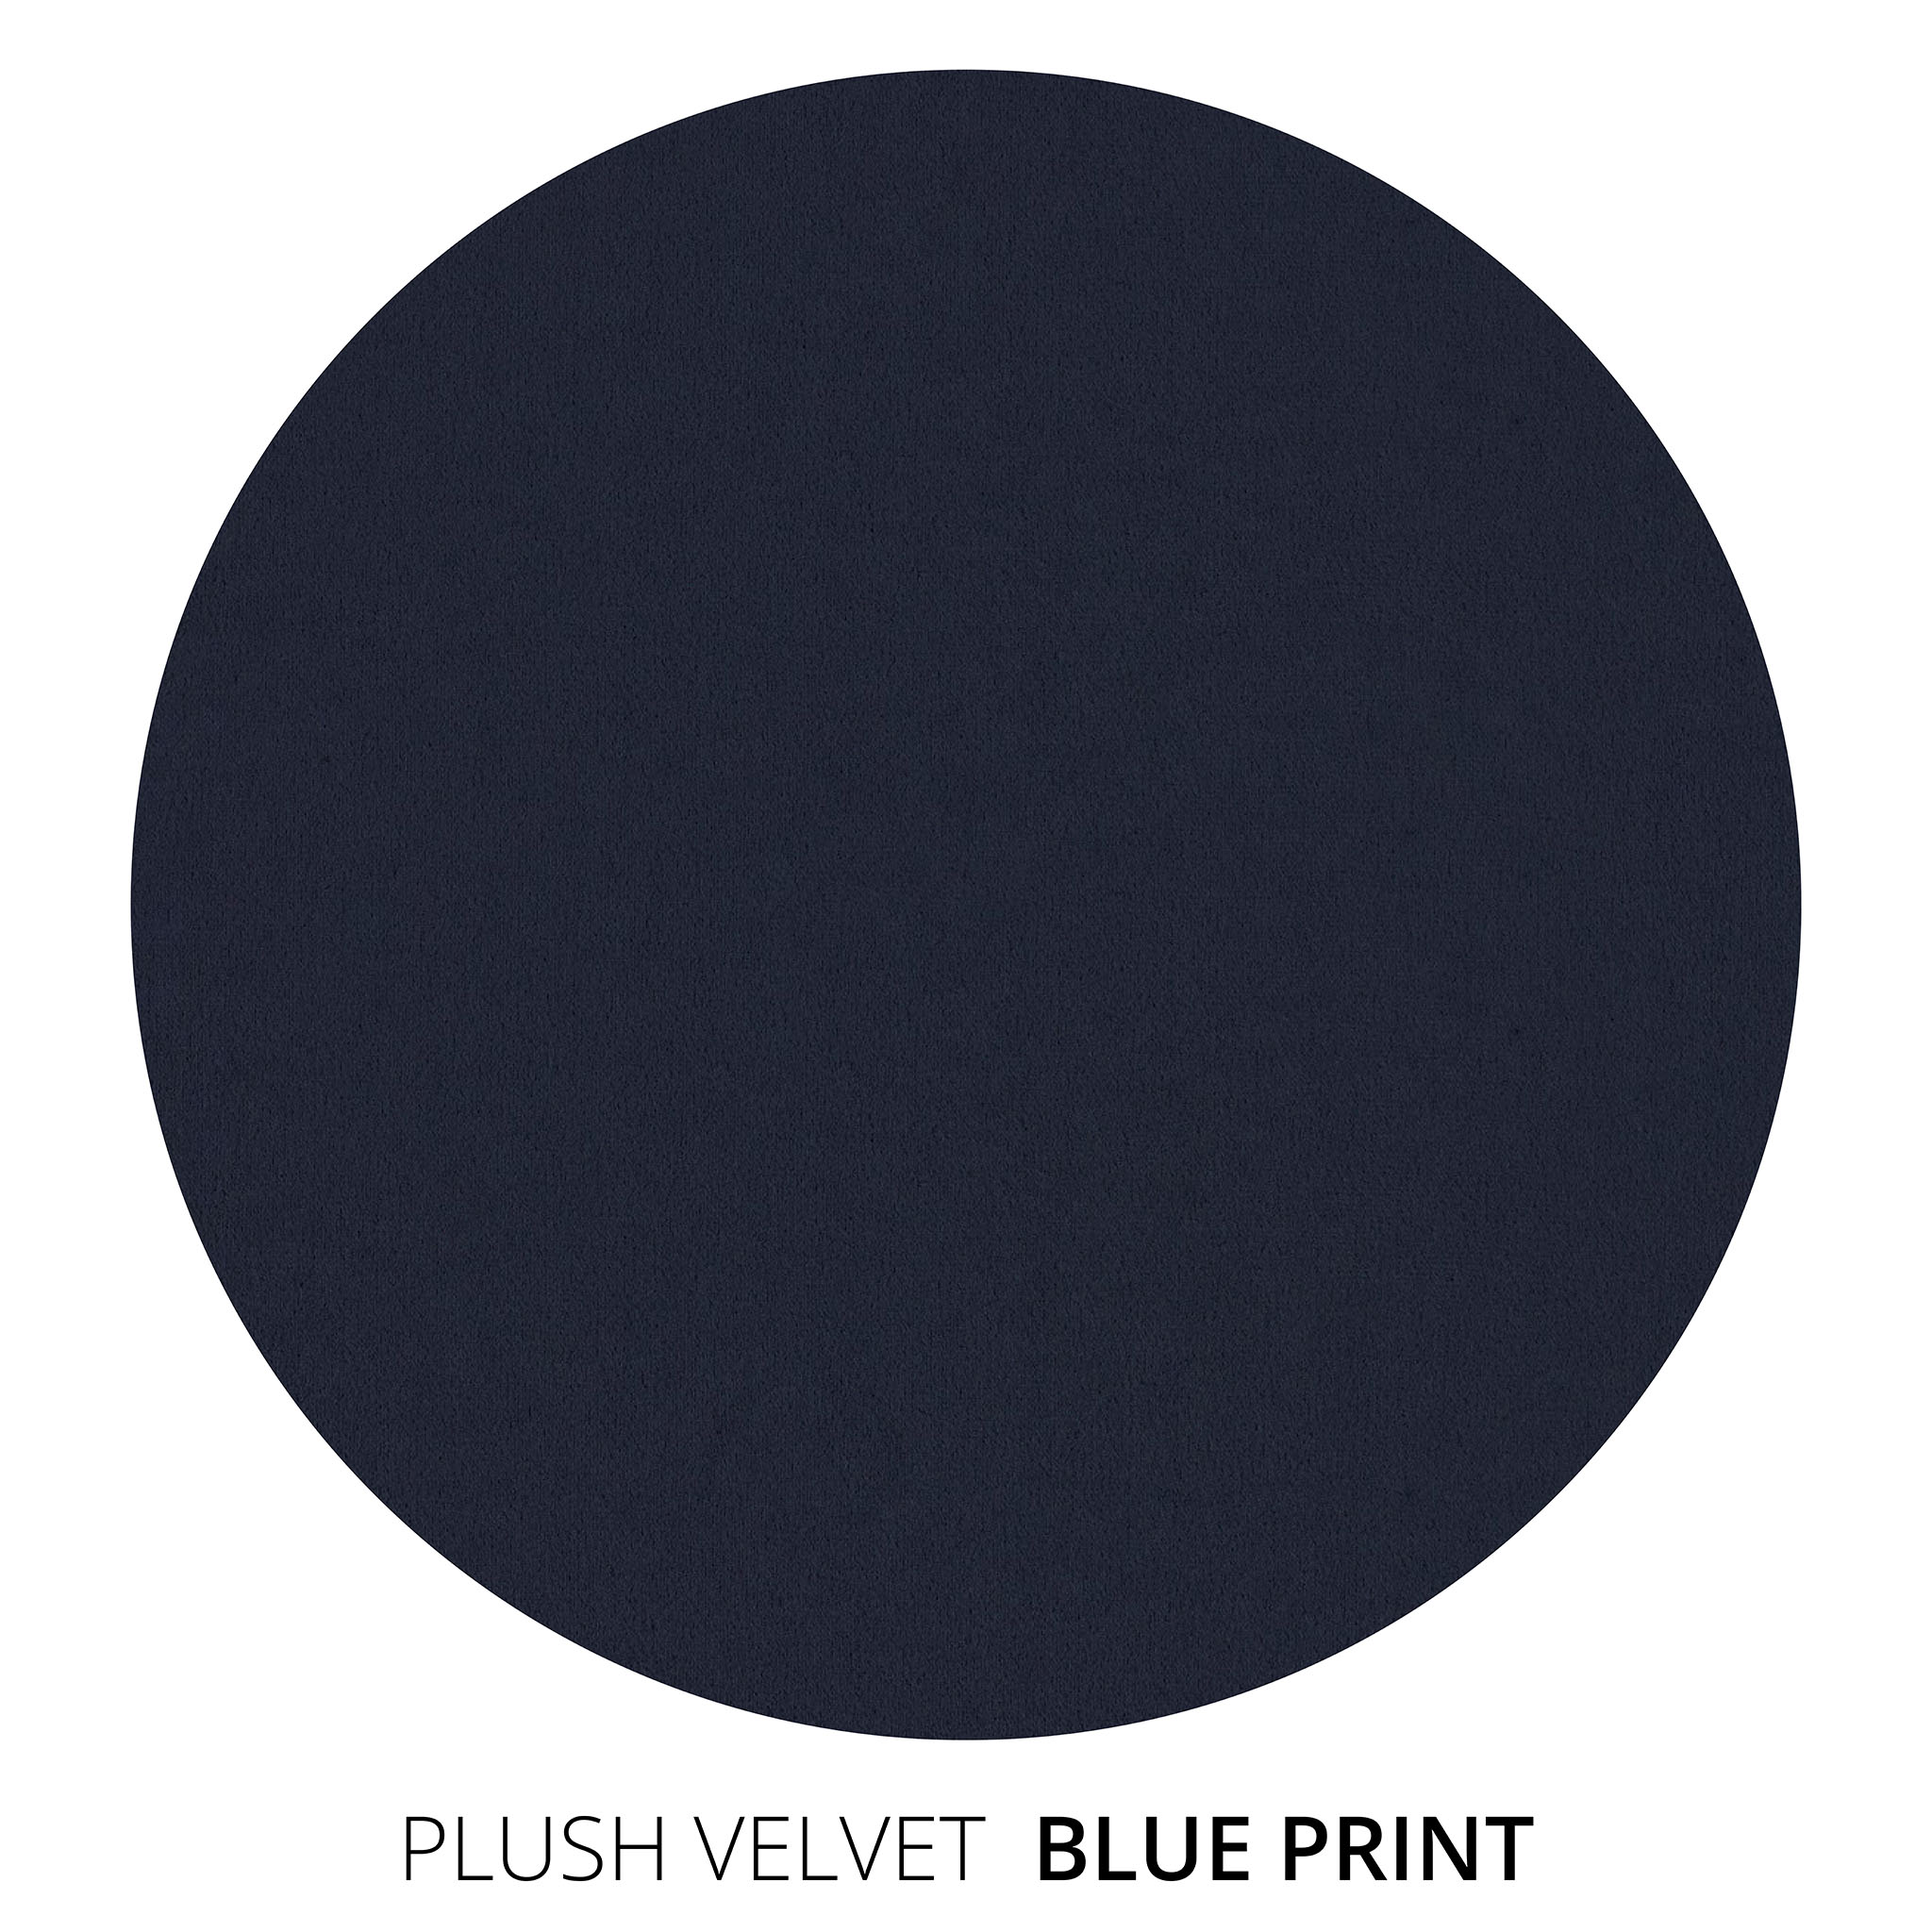 Blue Print Plush Velvet Swatch